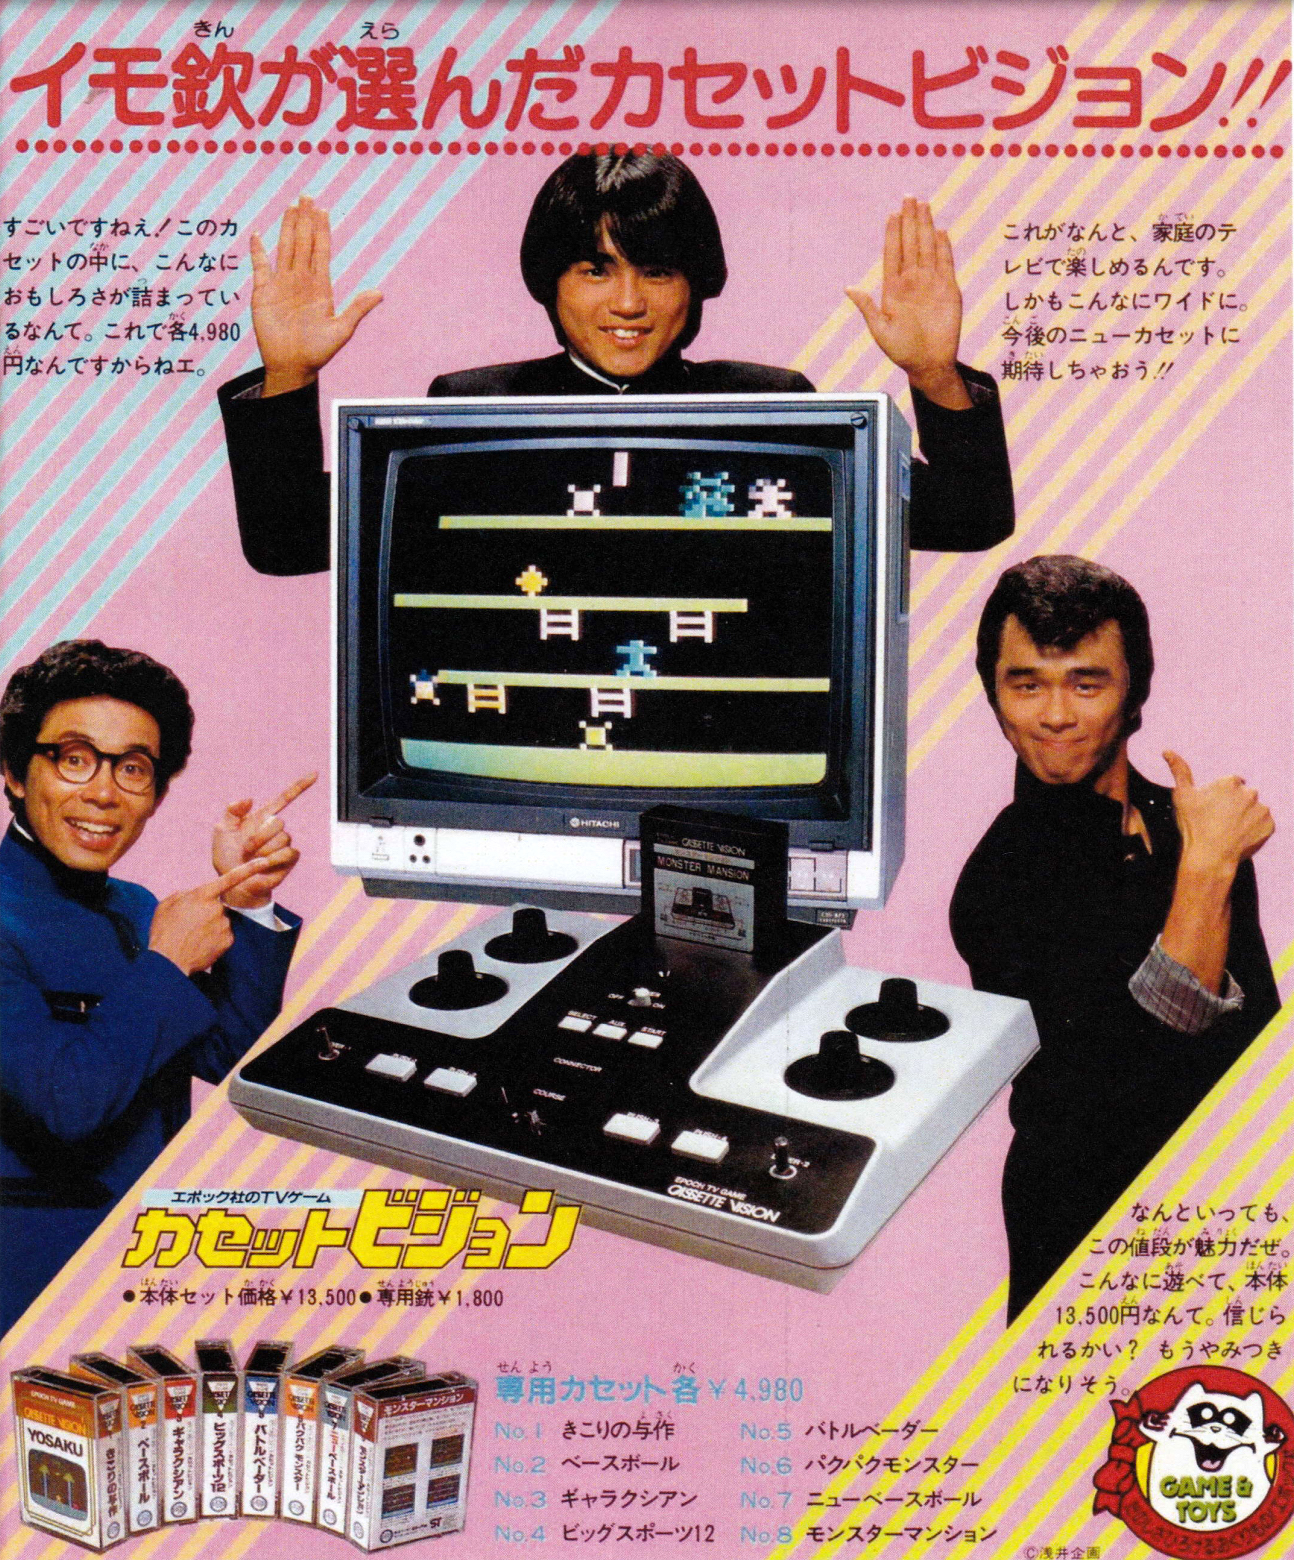 Japanese Video Games Ads From The 1980s